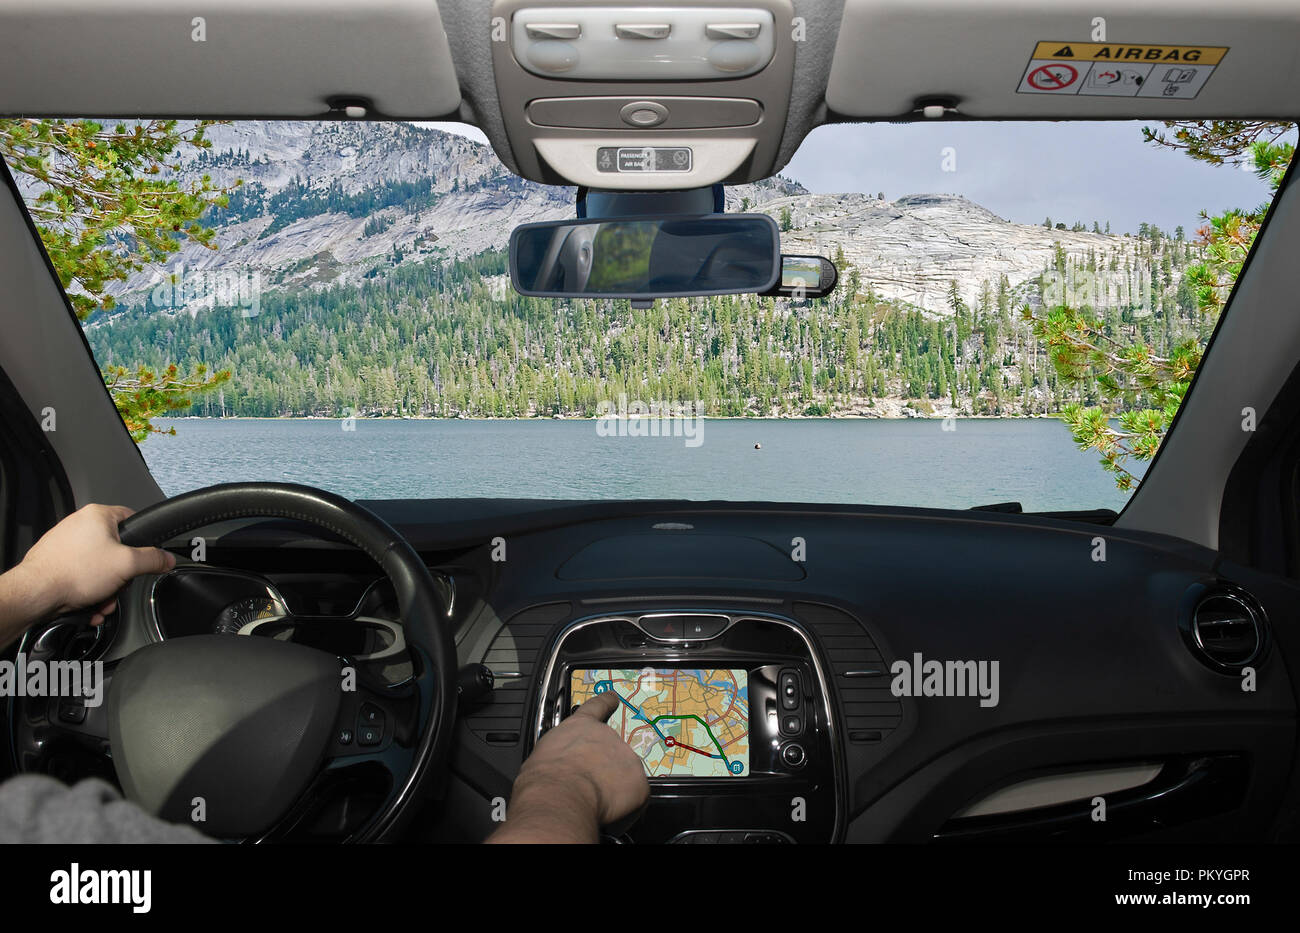 Driving a car while using the touch screen of a GPS navigation system towards a beautiful green valley and lake in Yosemite National Park, California, - Stock Image